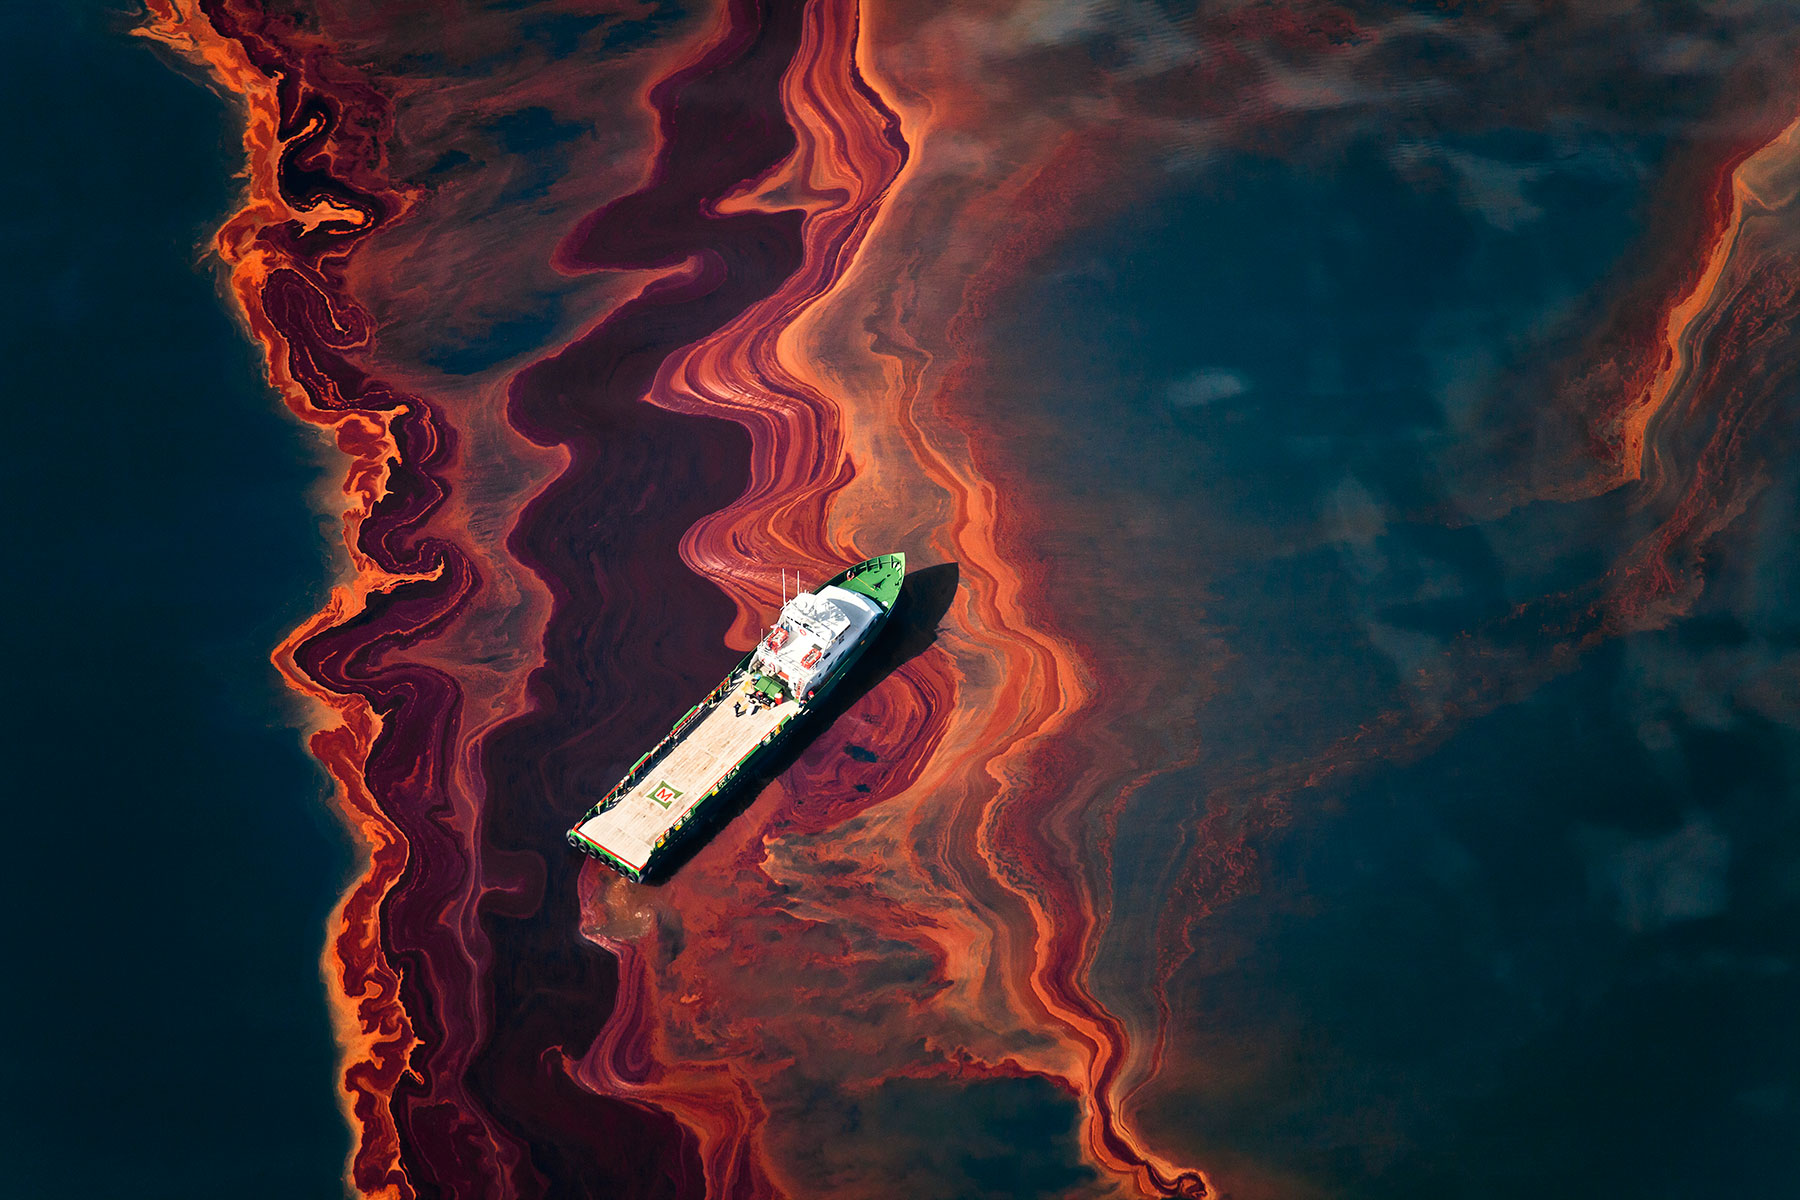 boat and oil slick in body of water